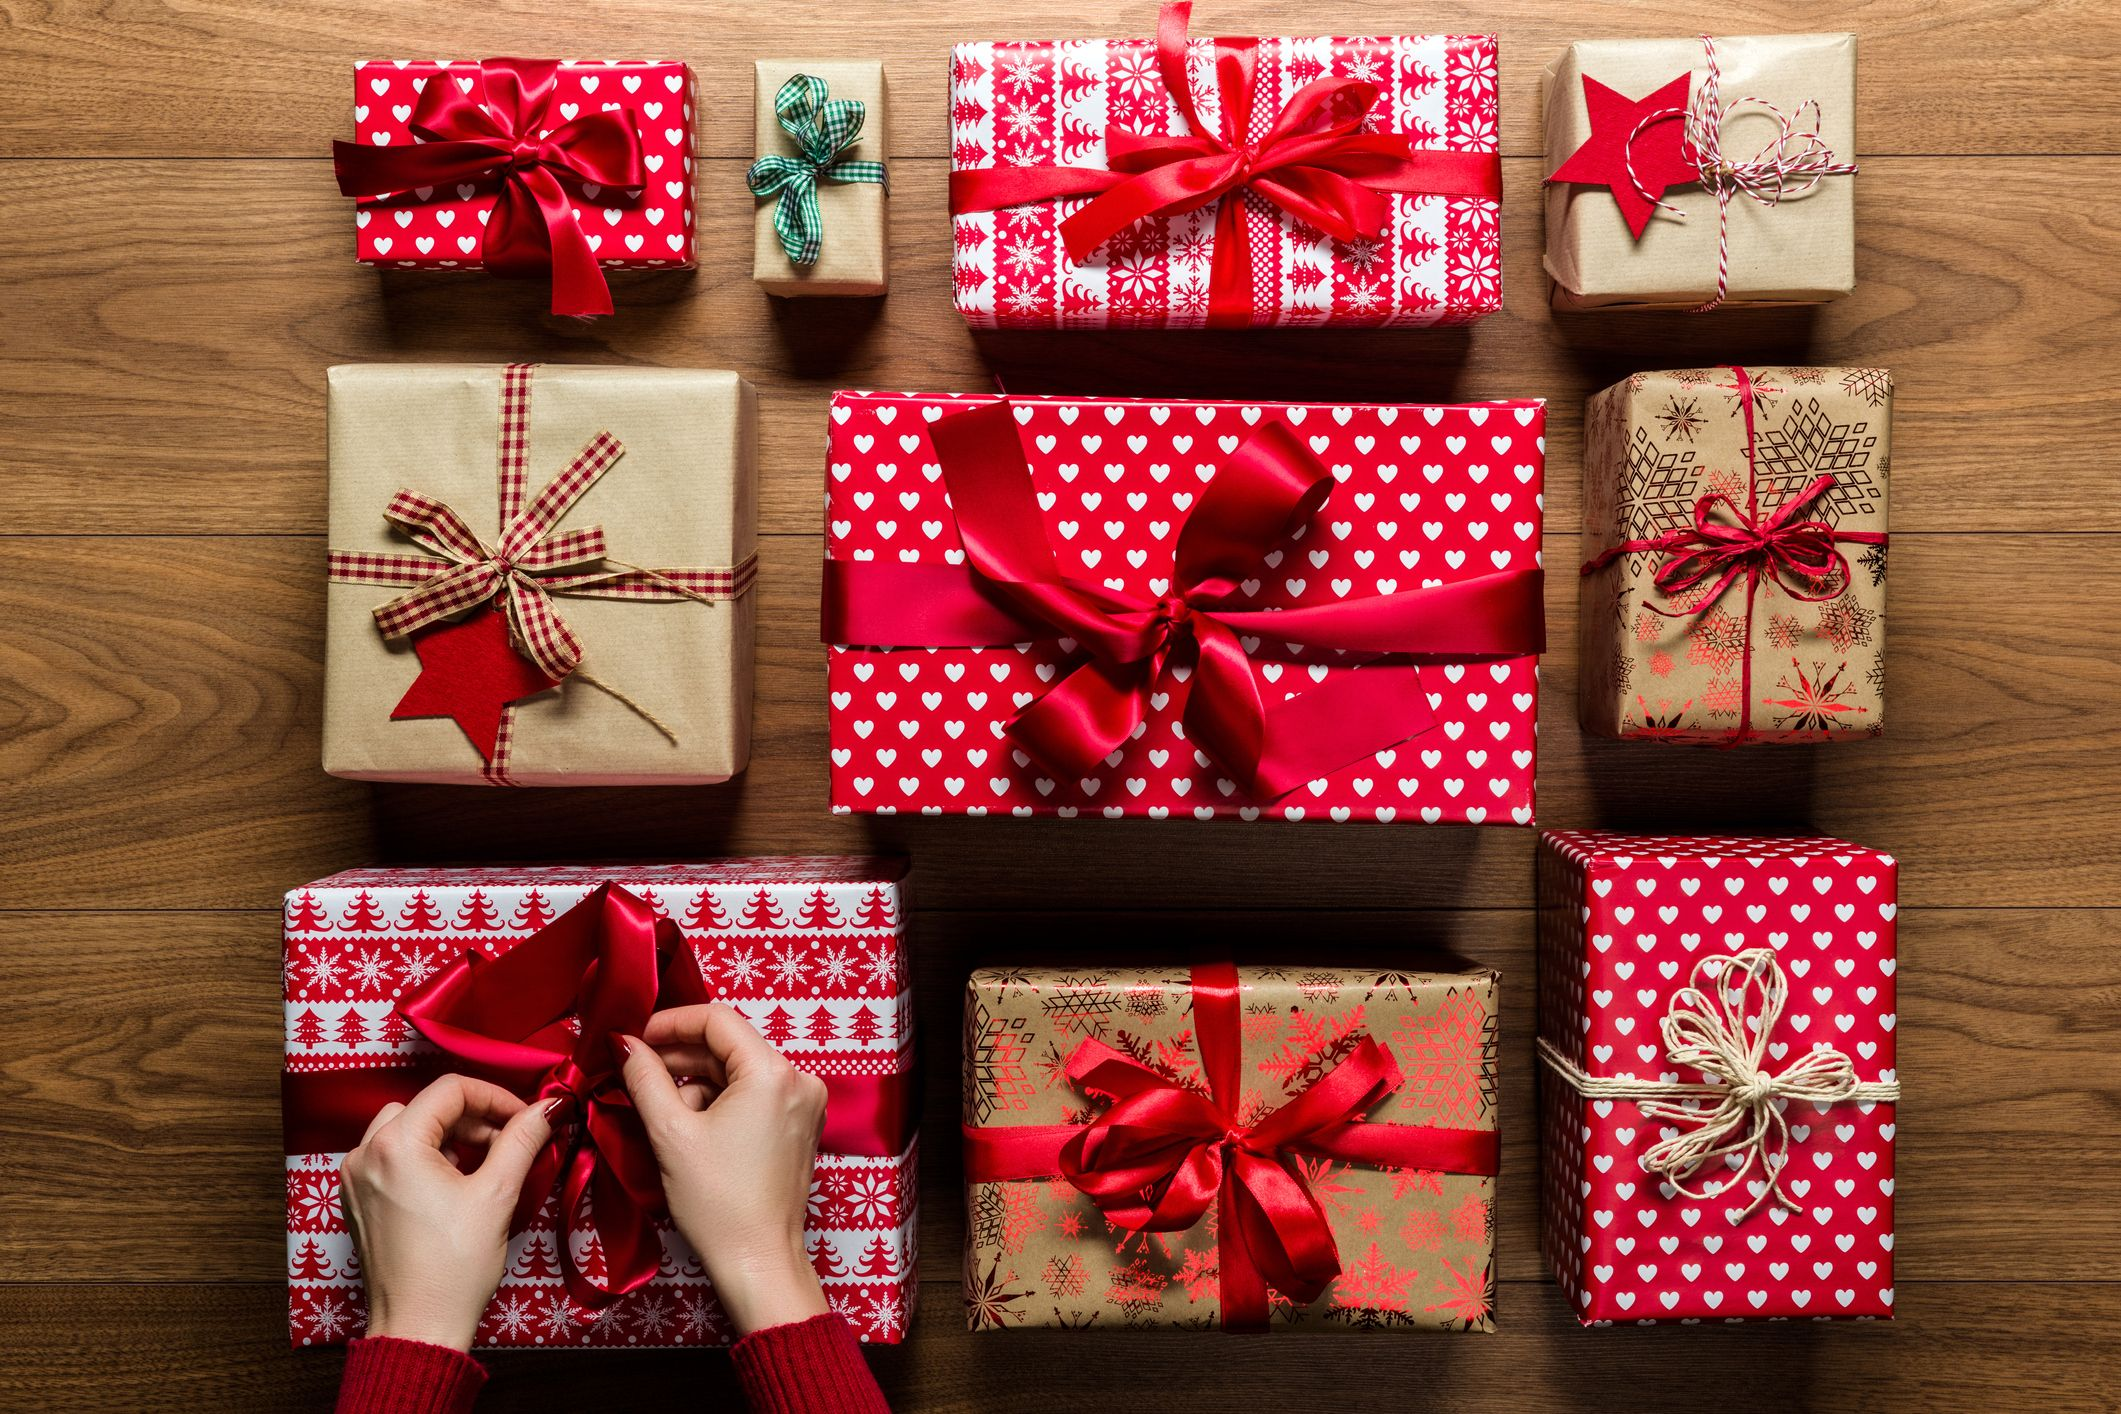 Tips to Find the Perfect Gift for Your Loved Ones